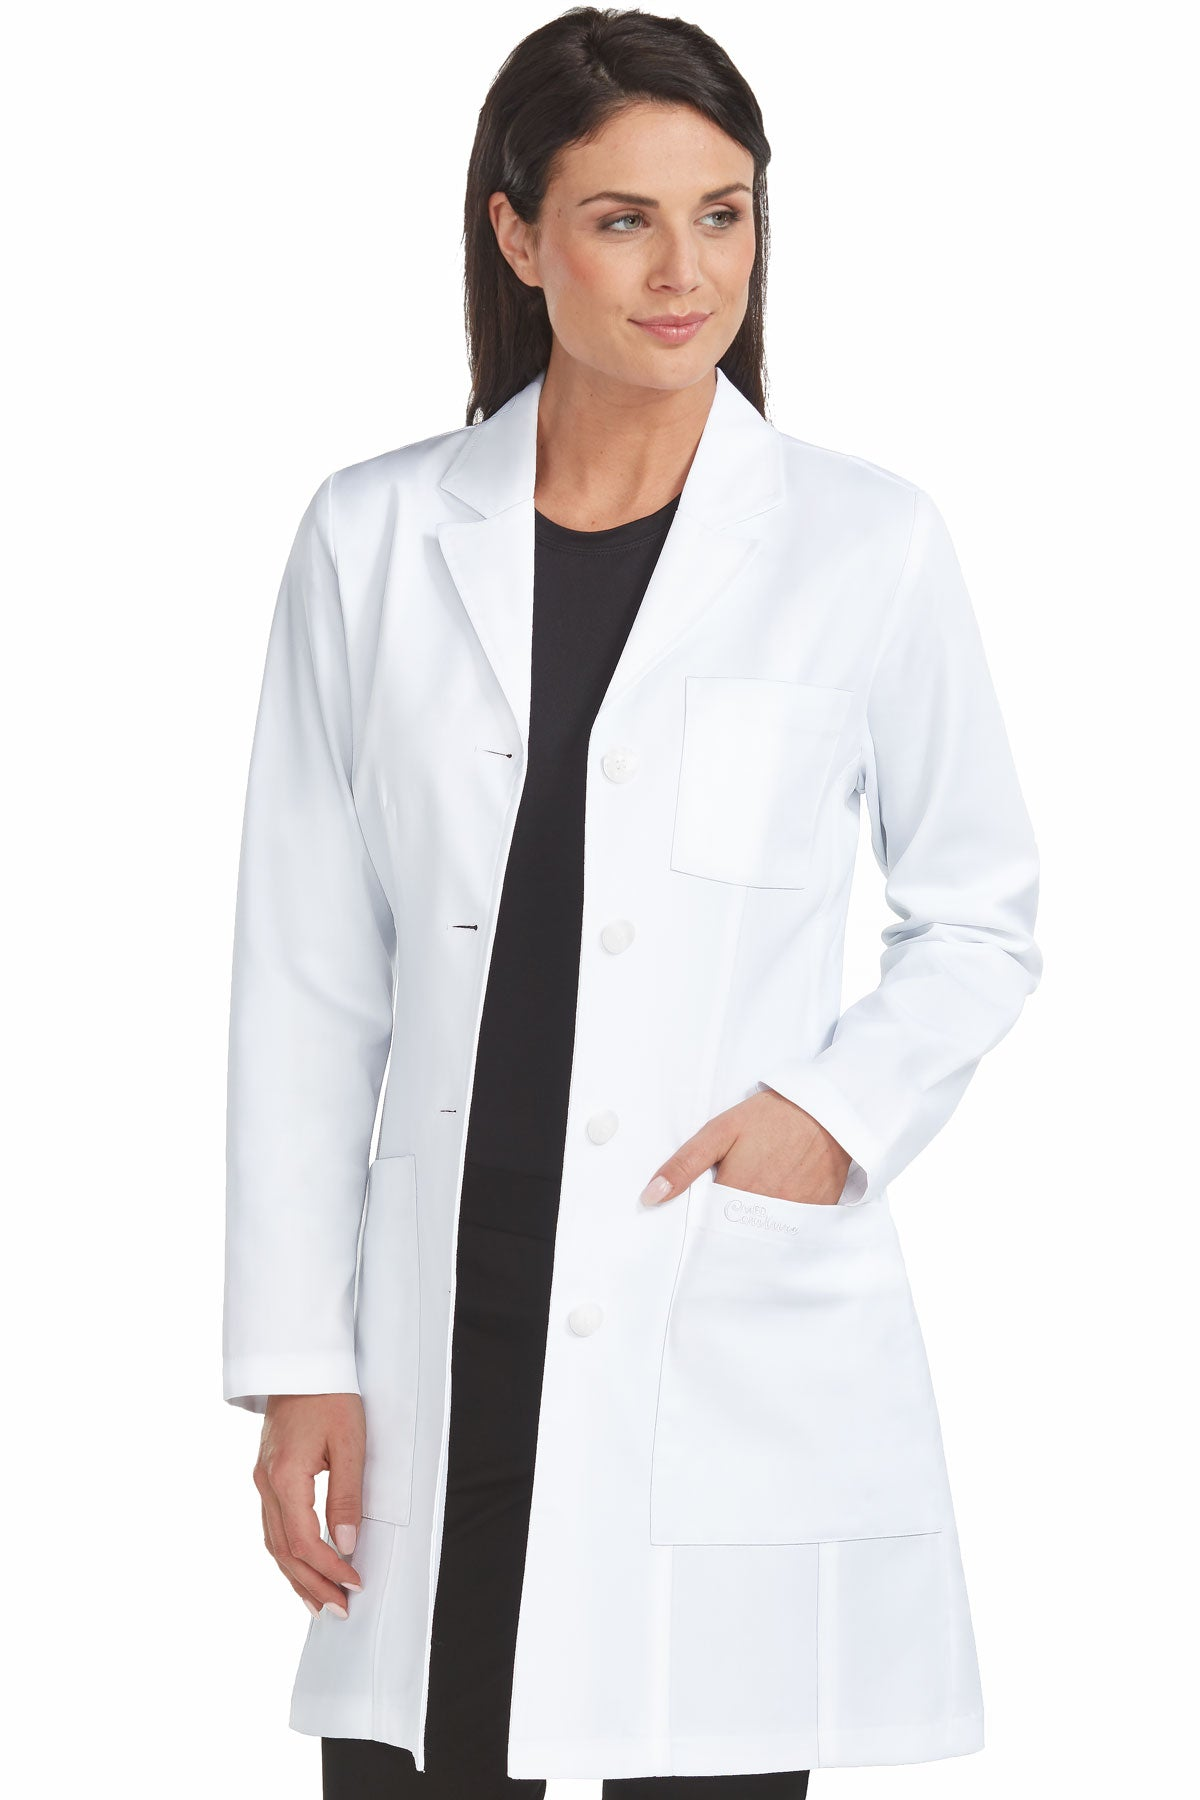 Med Couture 9652 Tailored Empire Mid Length Lab Coat